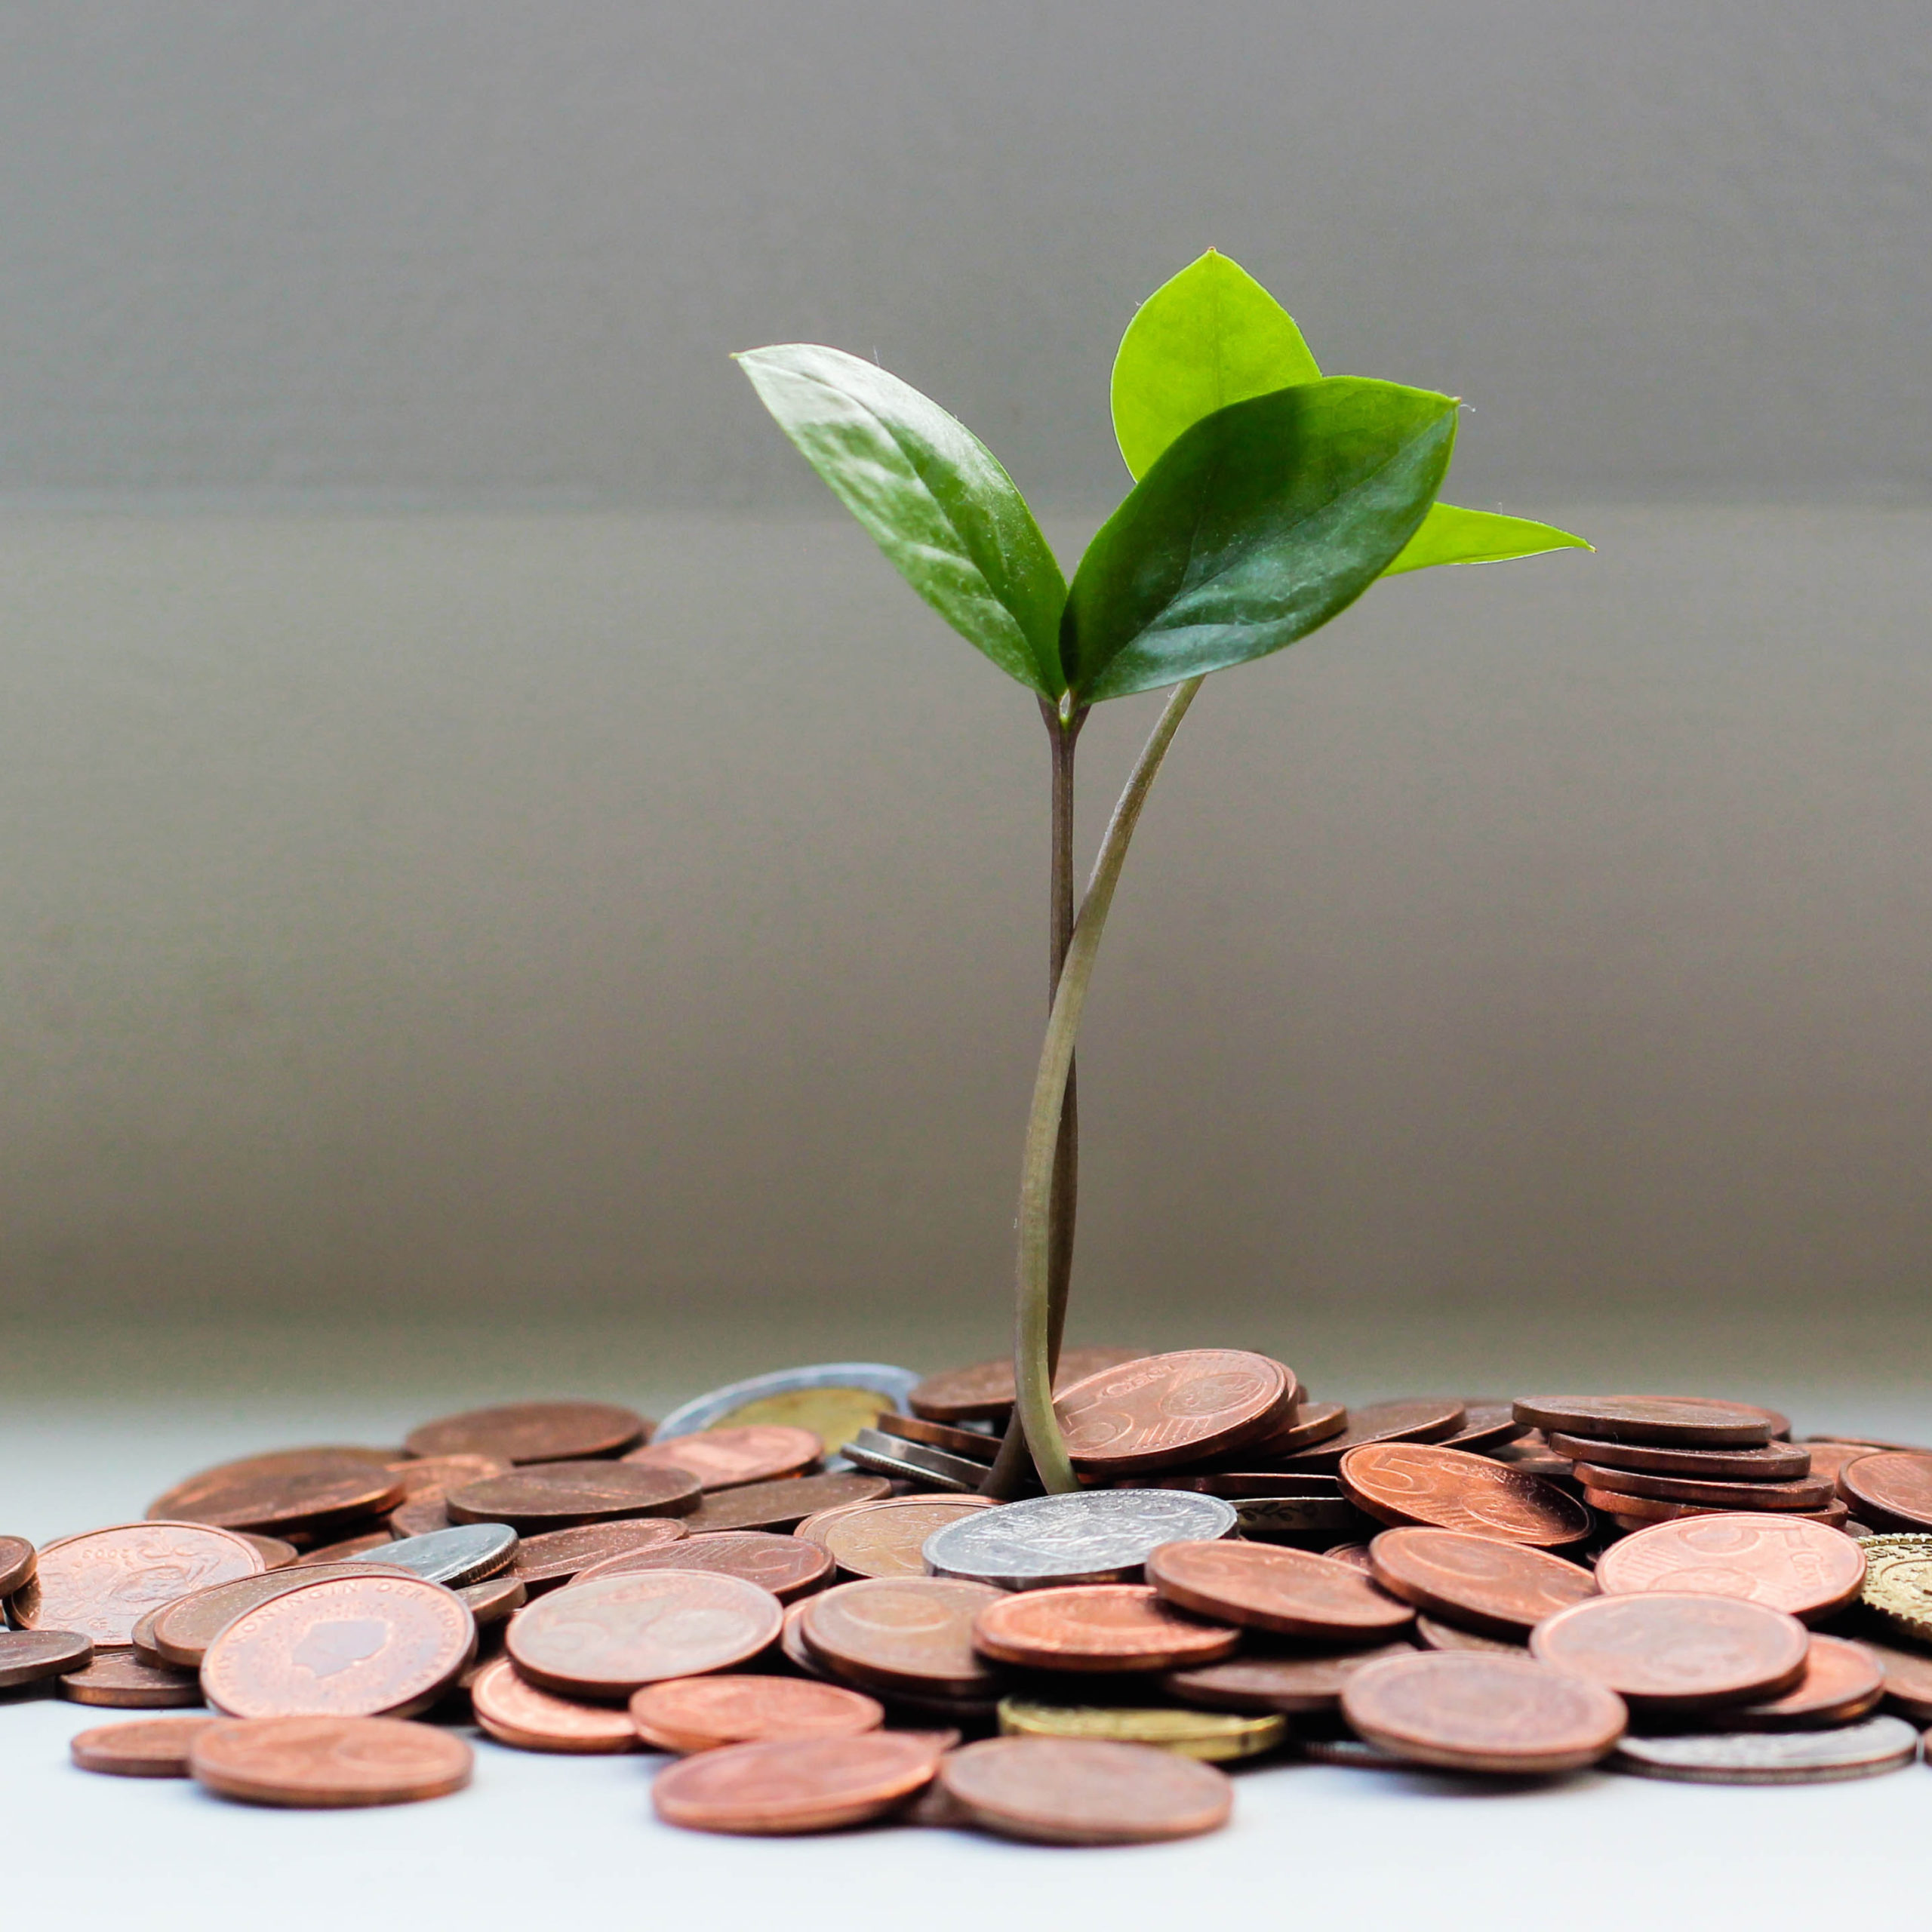 covid-finance-plant-coins